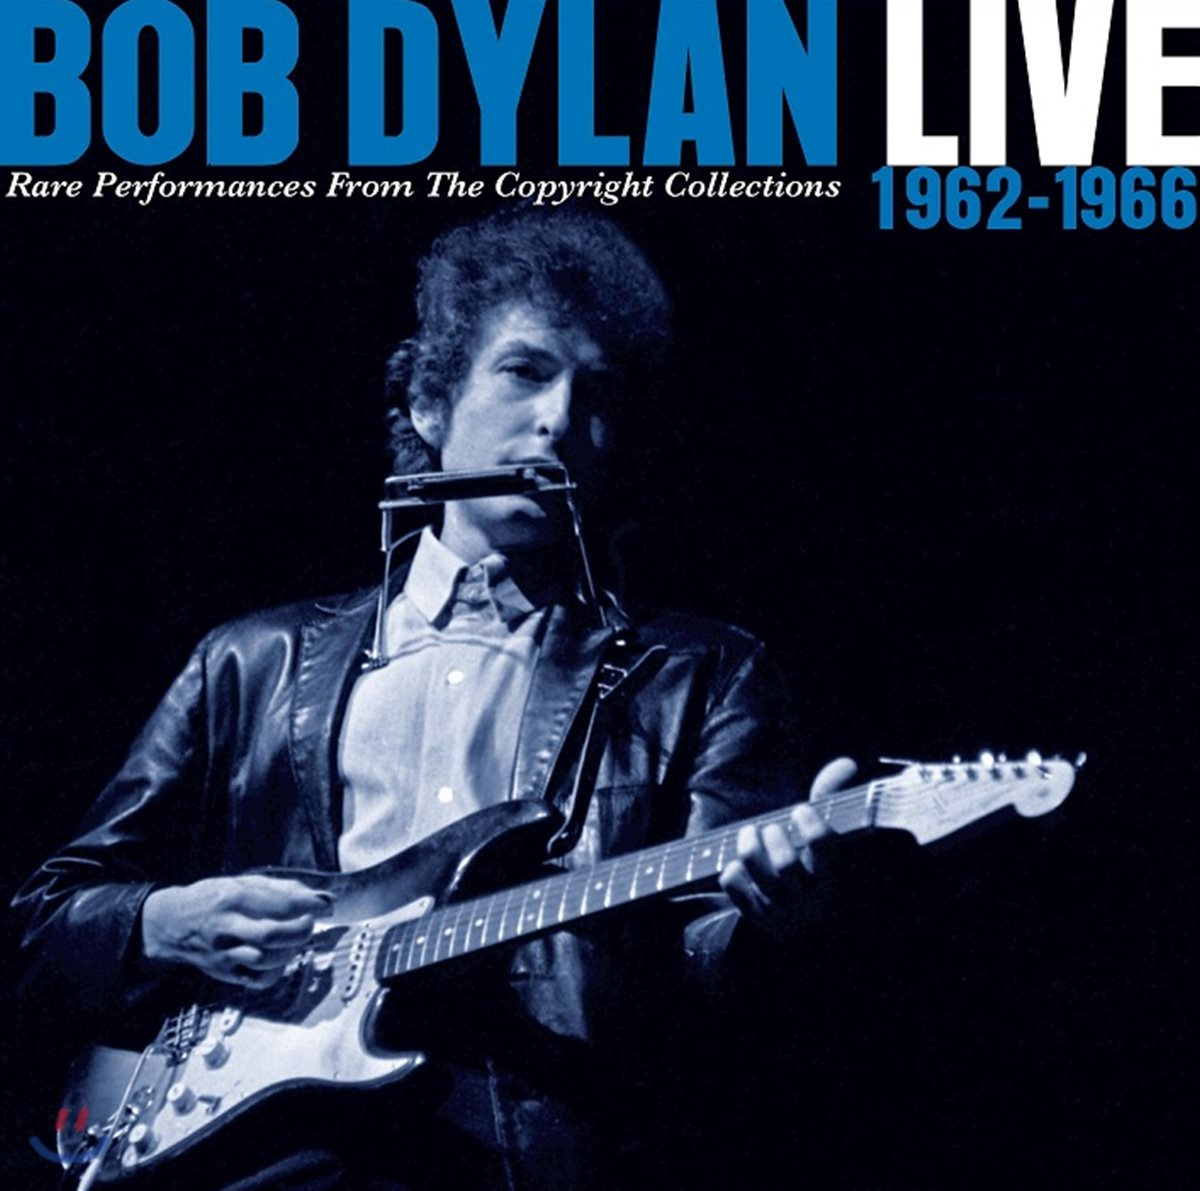 Bob Dylan (밥 딜런) - Live 1962-1966 : Rare Performances From The Copyright Collections